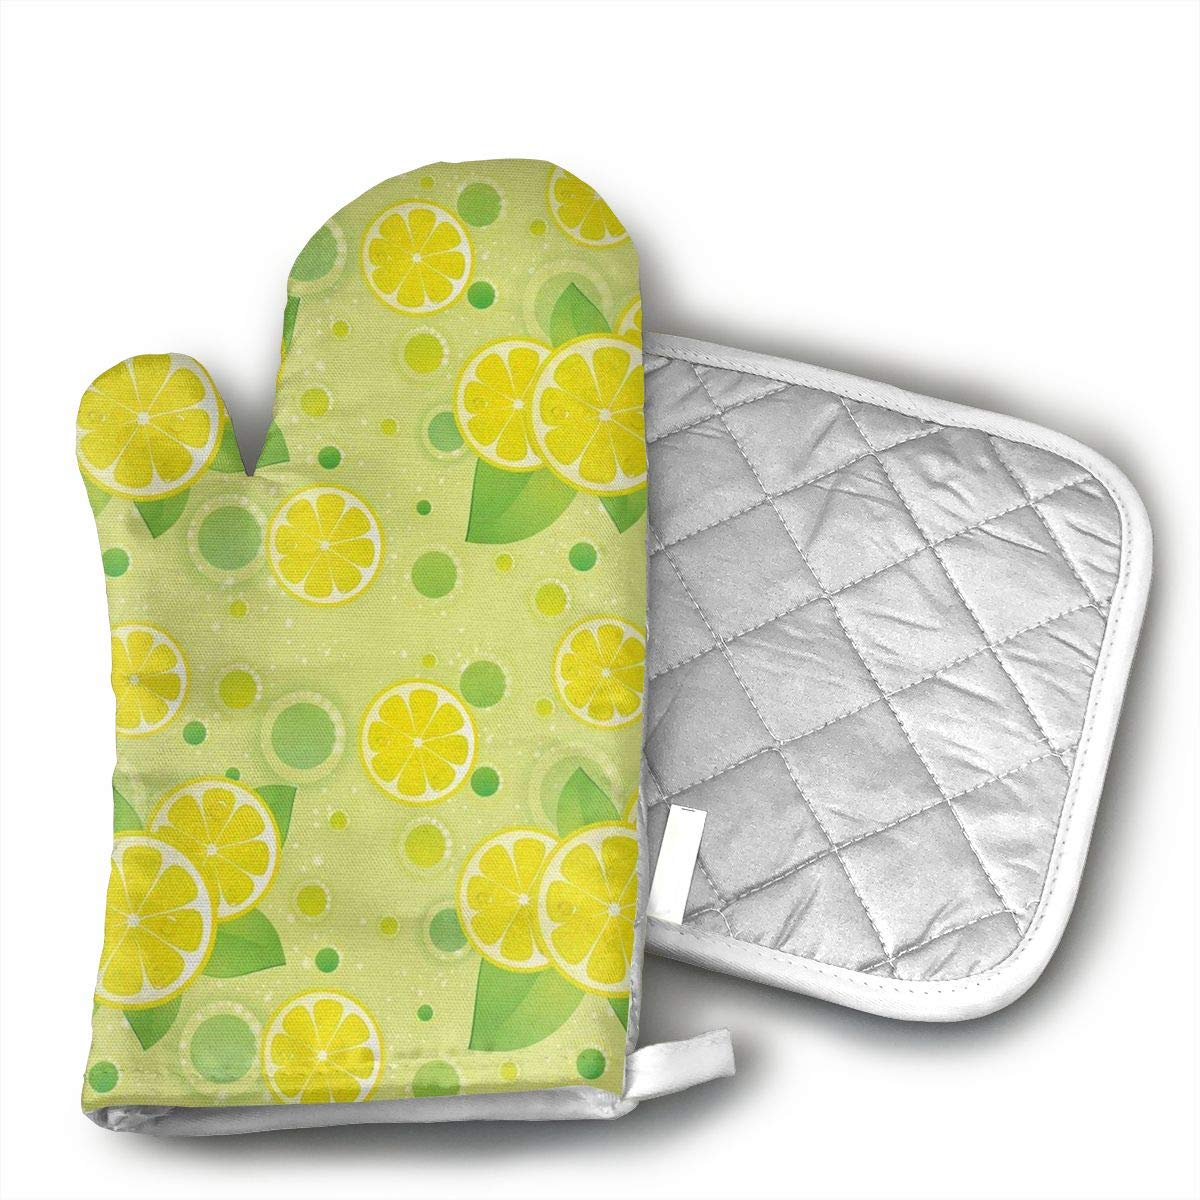 Wiqo9 Lemon Lime Pattern in Retro Vintage Oven Mitts and Pot Holders Kitchen Mitten Cooking Gloves,Cooking, Baking, BBQ.